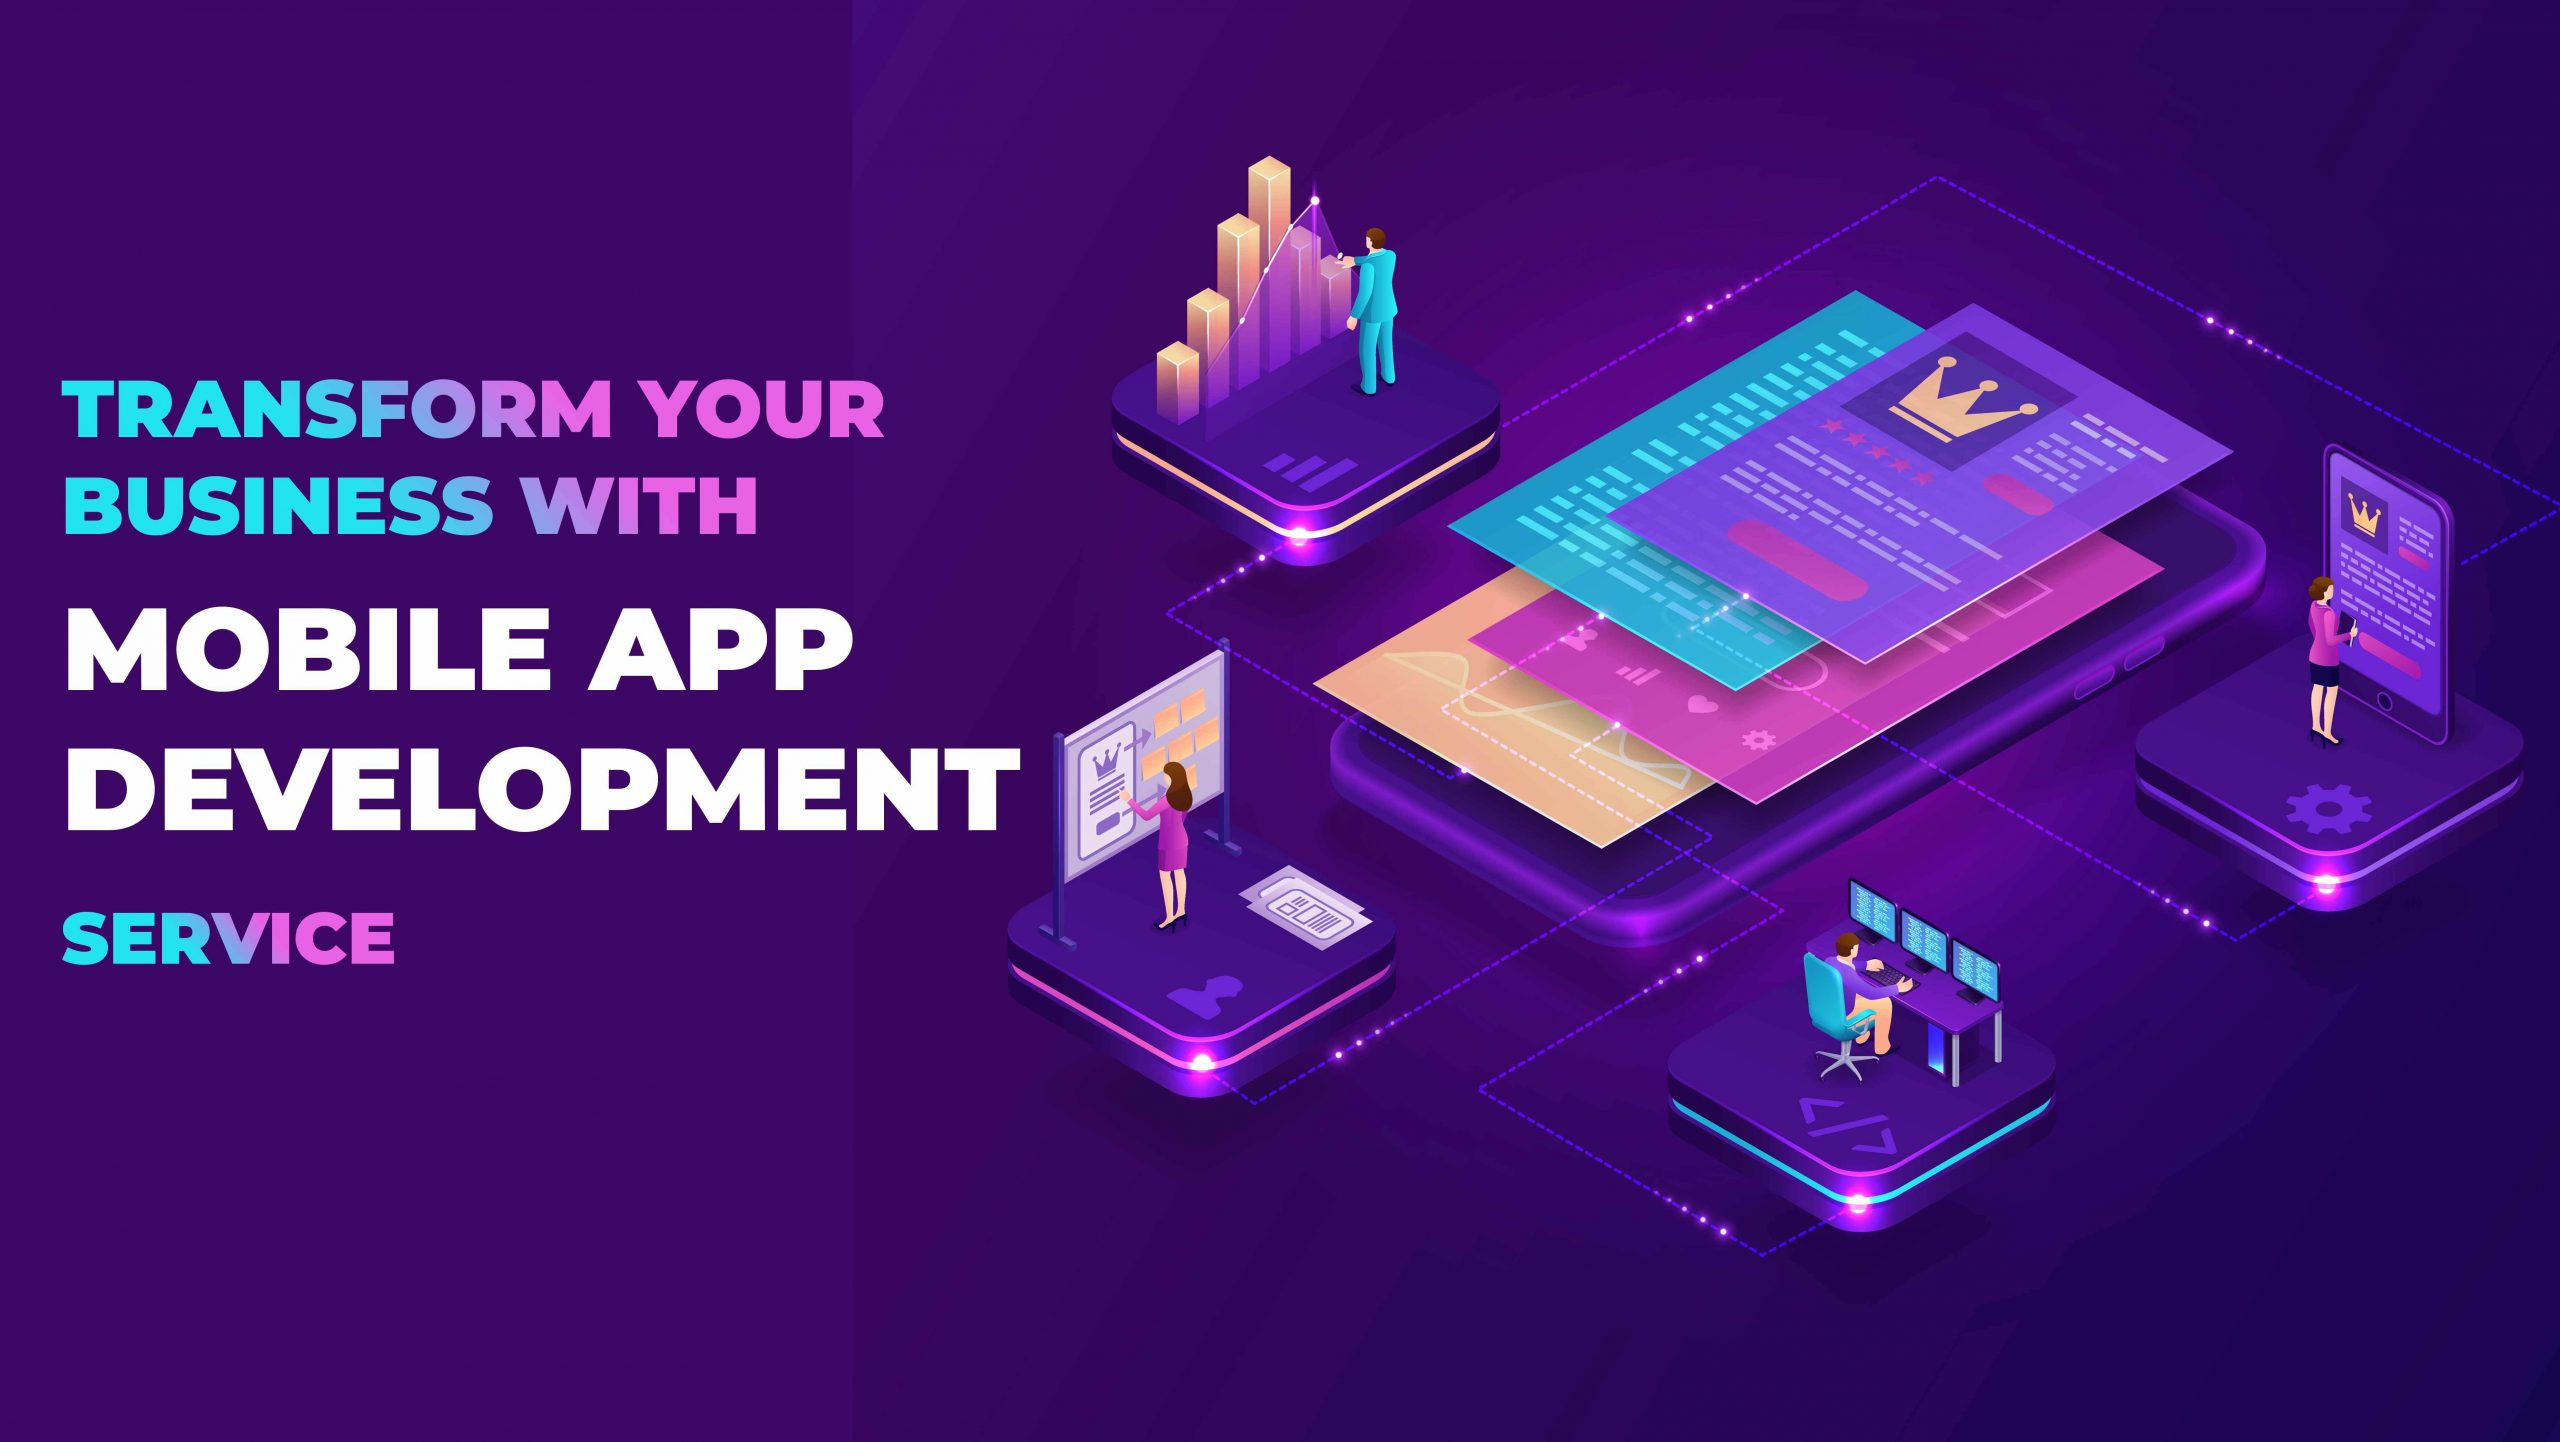 Transform Your Business with Mobile App Development Service